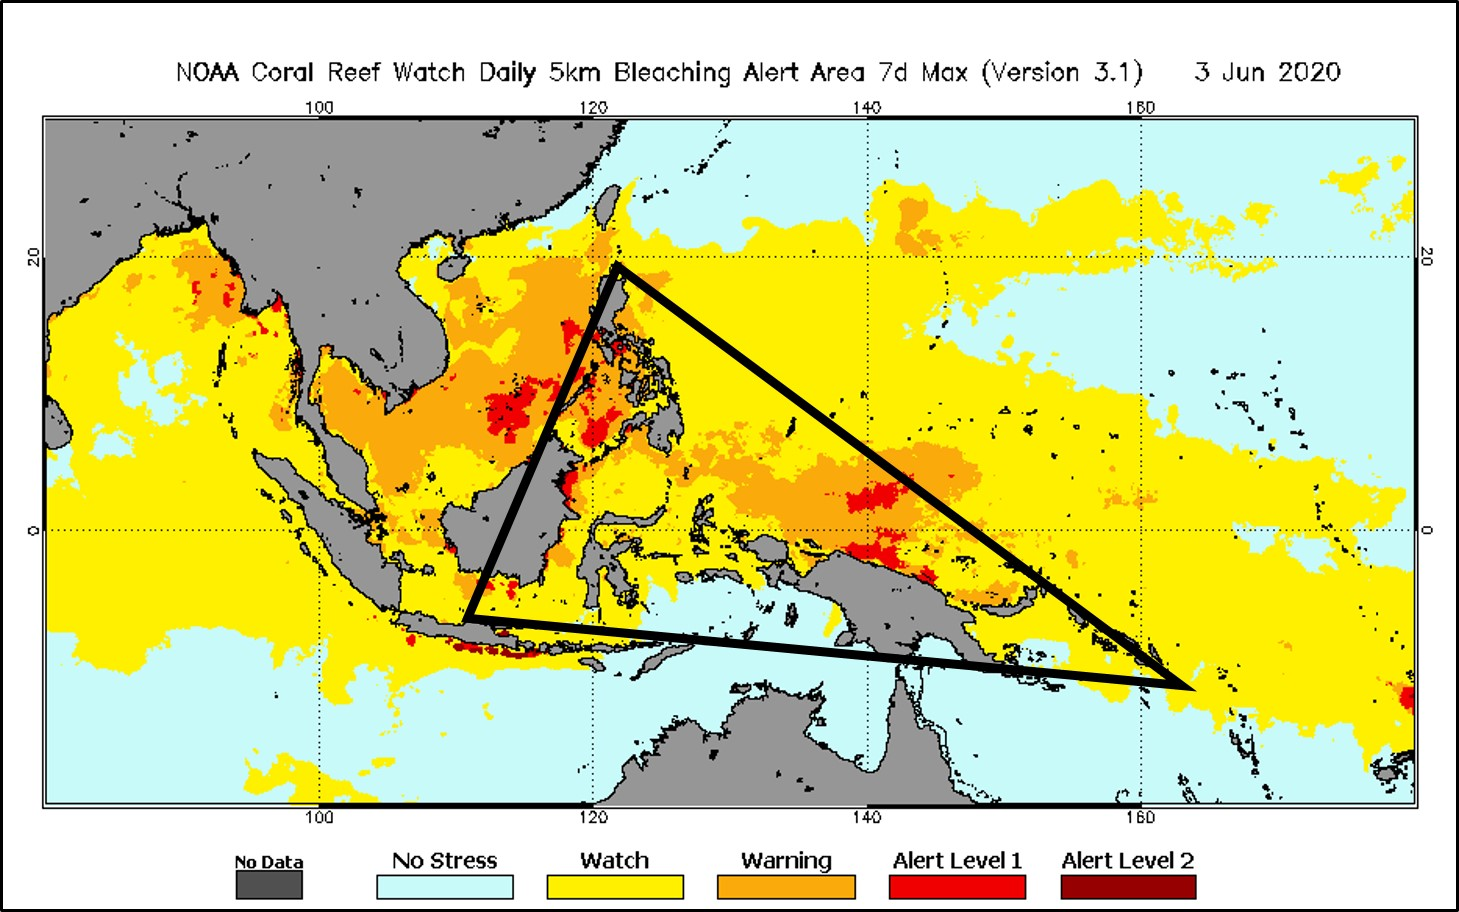 Coral Reef Watch bleaching alert on April 30, 2020 for the Coral Triangle, with the area outlined.